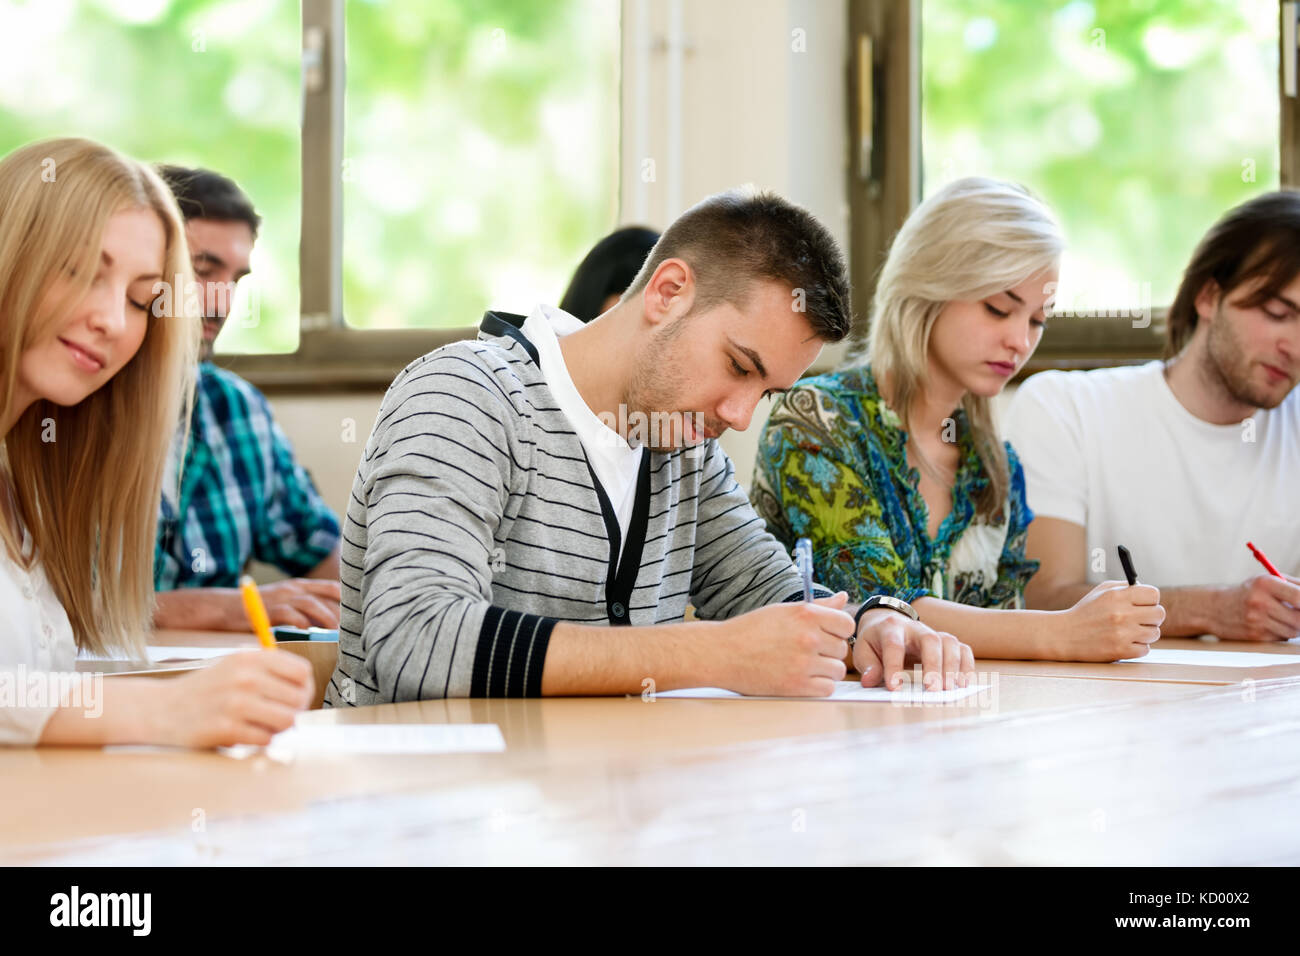 Group of students in class at the university - Stock Image